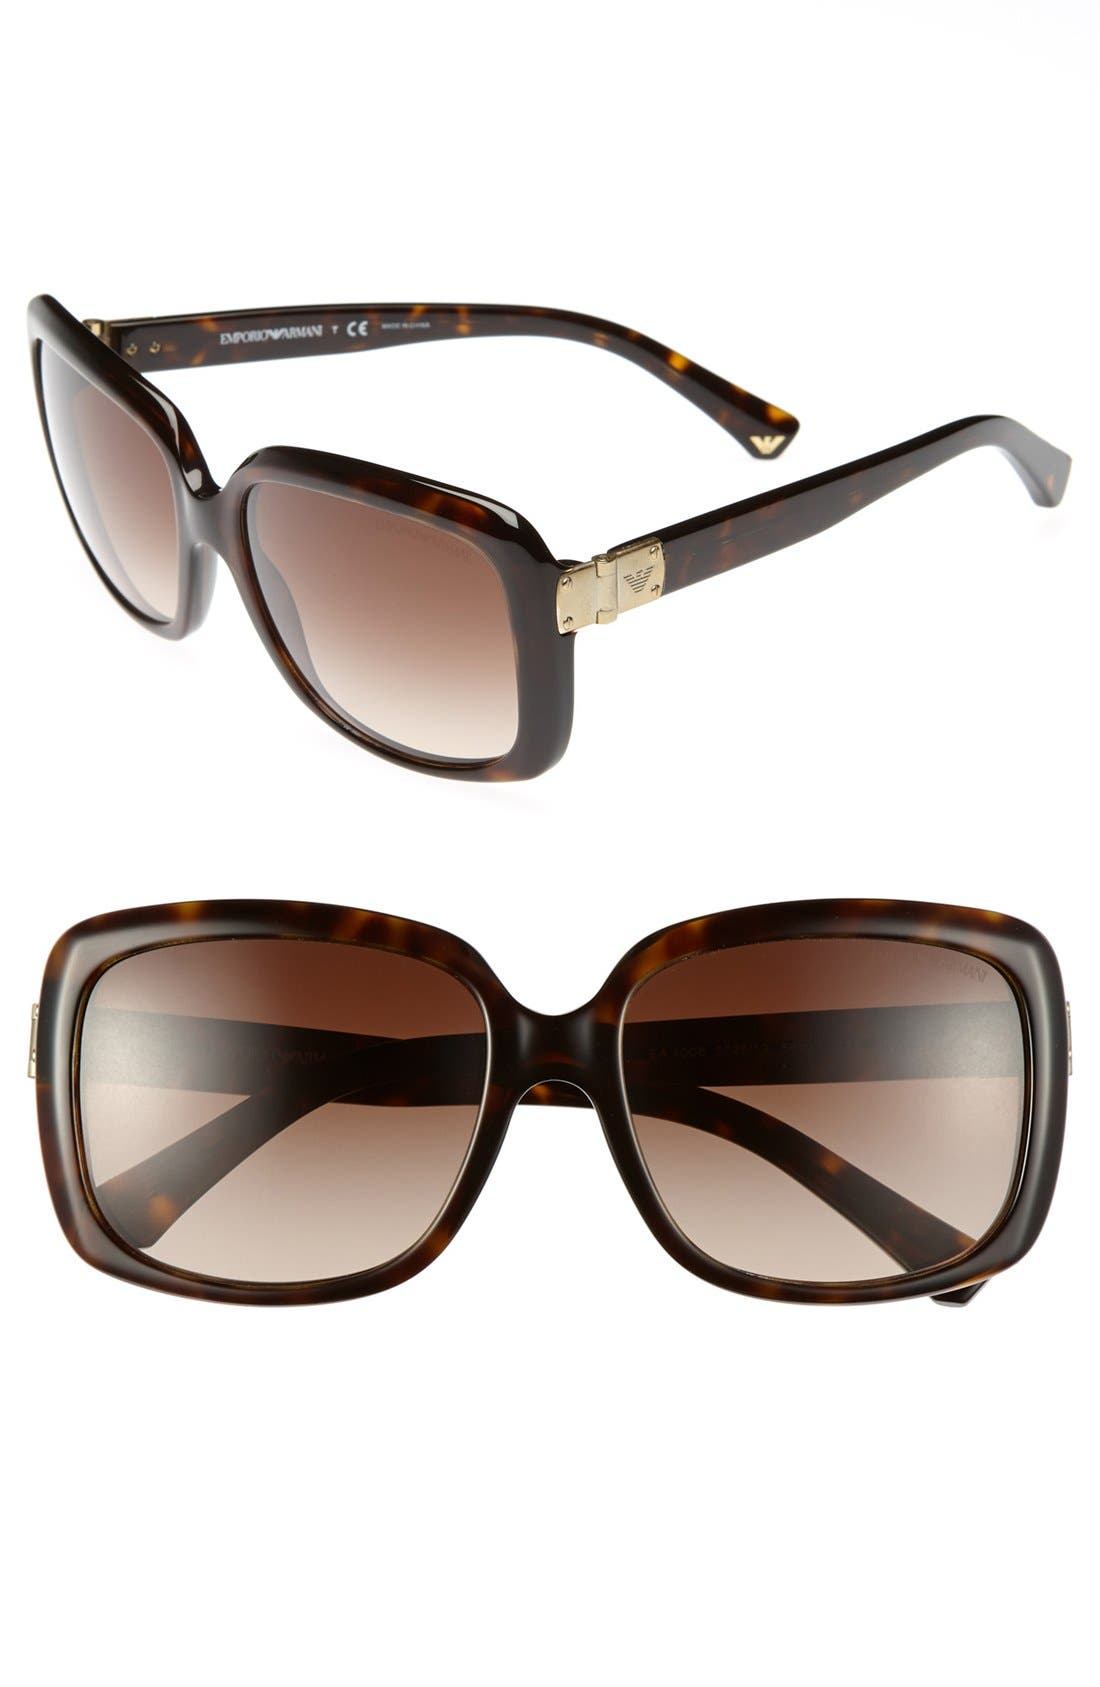 Main Image - Emporio Armani 56mm Sunglasses